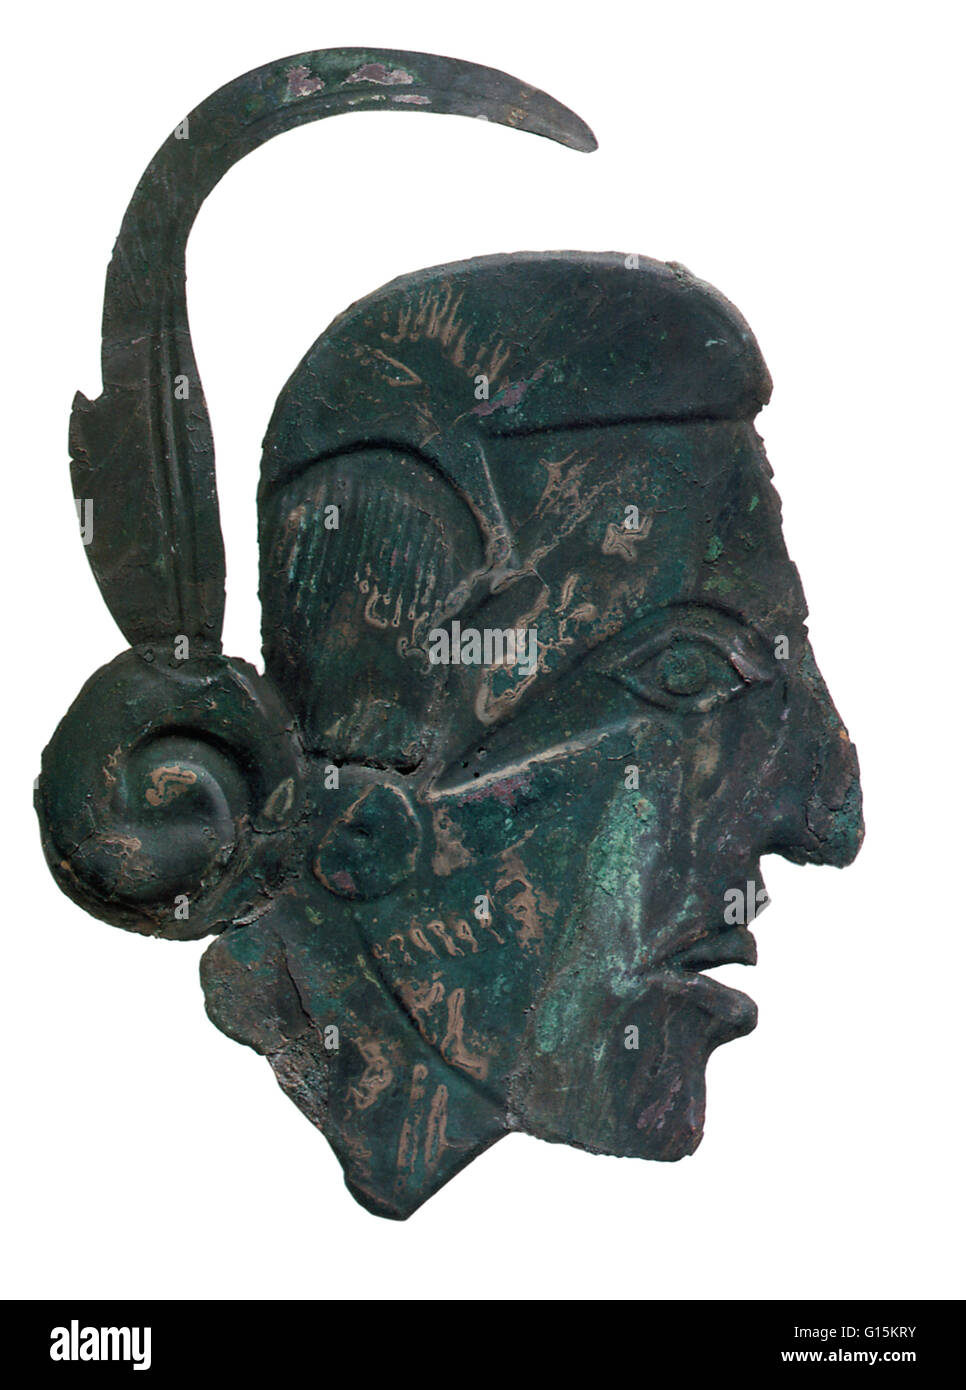 Mississipian copper ornament depicting a warrior in relief, found at Craig Mound, at the Spiro Mounds archaeological - Stock Image